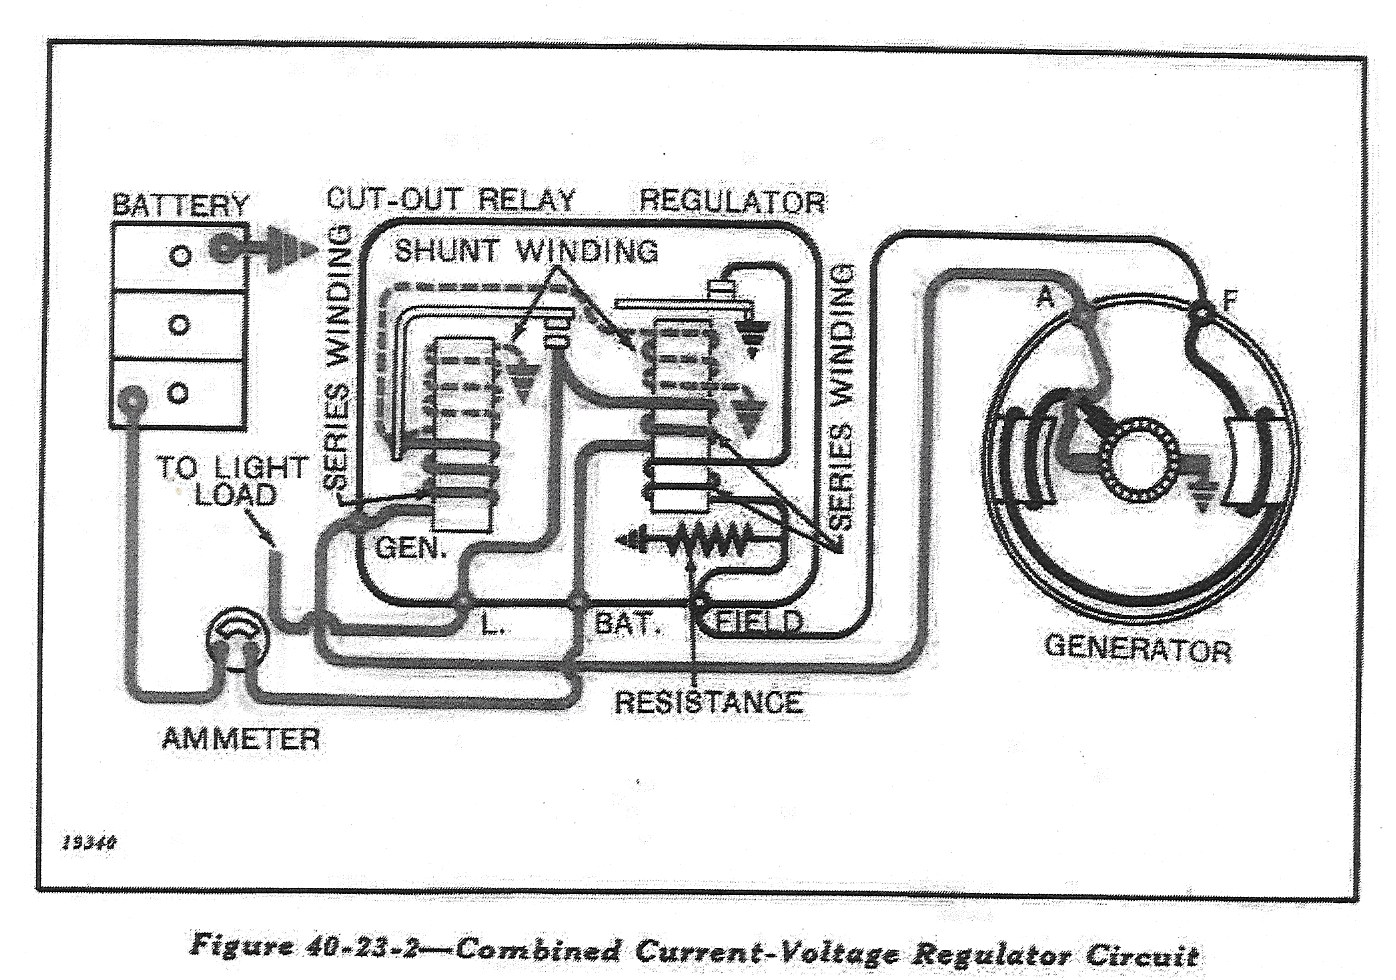 1948 Farmall H Wiring Diagram also Full Wiring Diagram 1949 together with Panhead Generator Wiring Diagram further 1952 Ford Pickup Wiring Diagram also bunkerofdoom. on 1949 ford generator wiring diagram